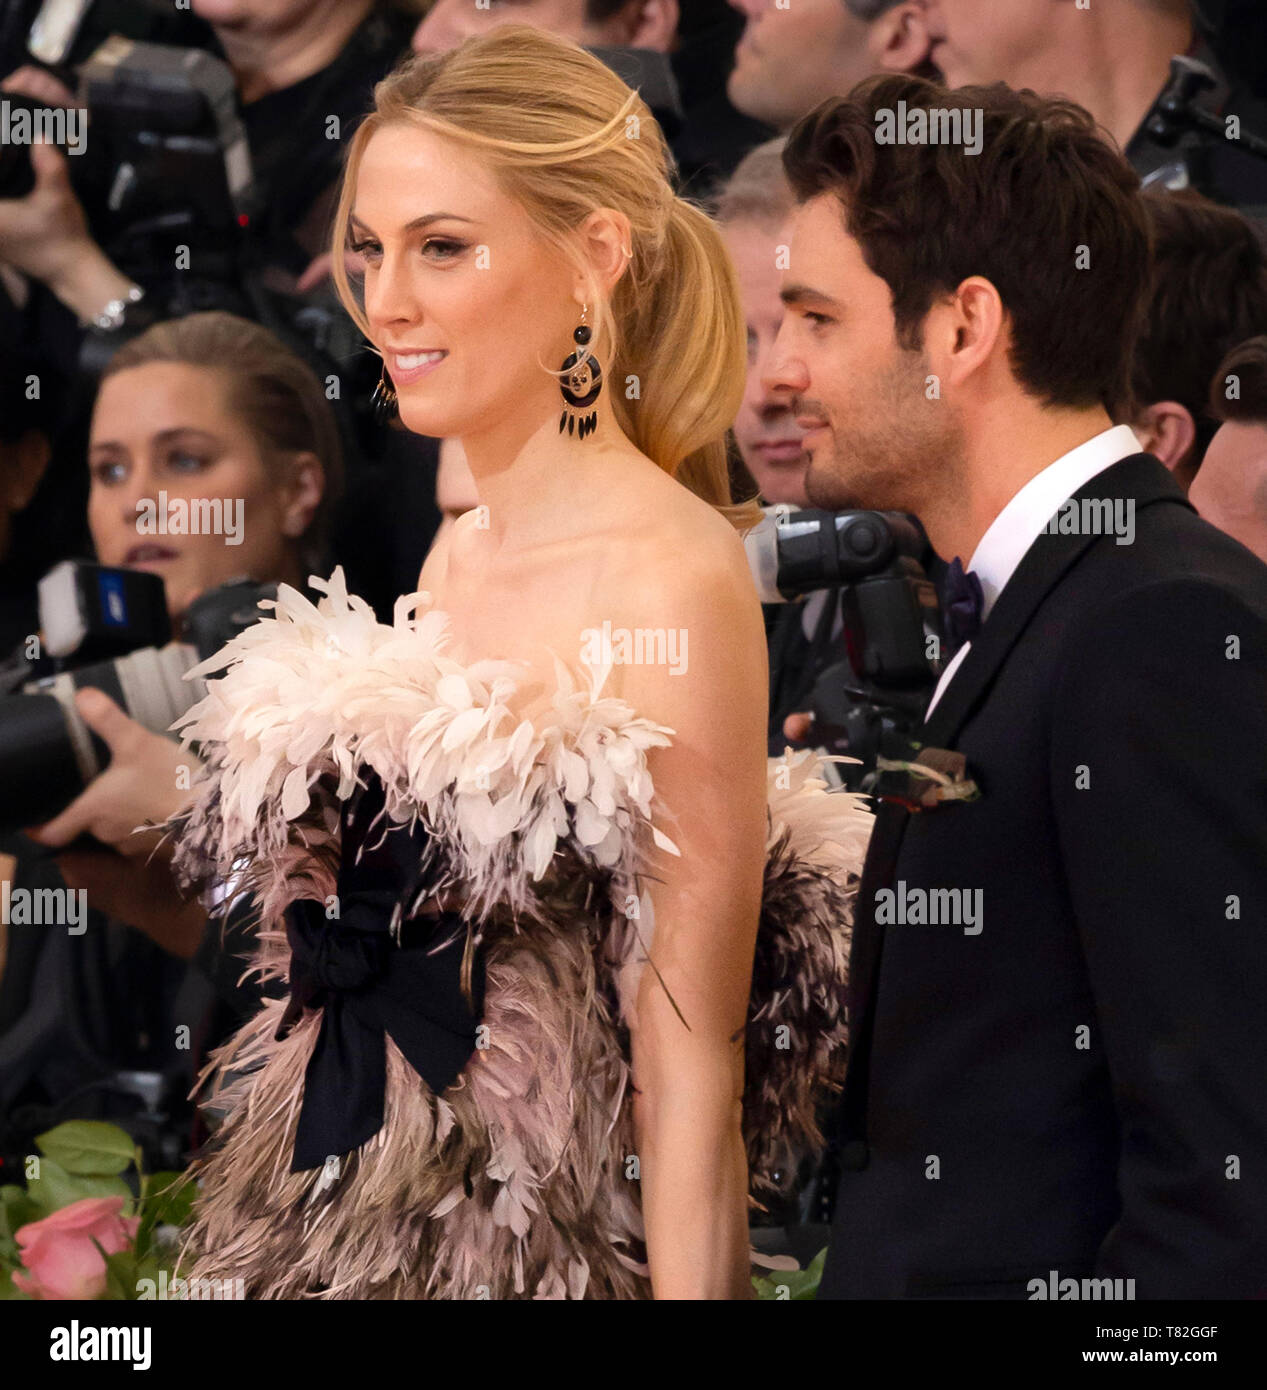 New York, NY - May 06, 2019: Guests arrive for the 2019 Met Gala celebrating Camp: Notes on Fashion at The Metropolitan Museum of Art - Stock Image